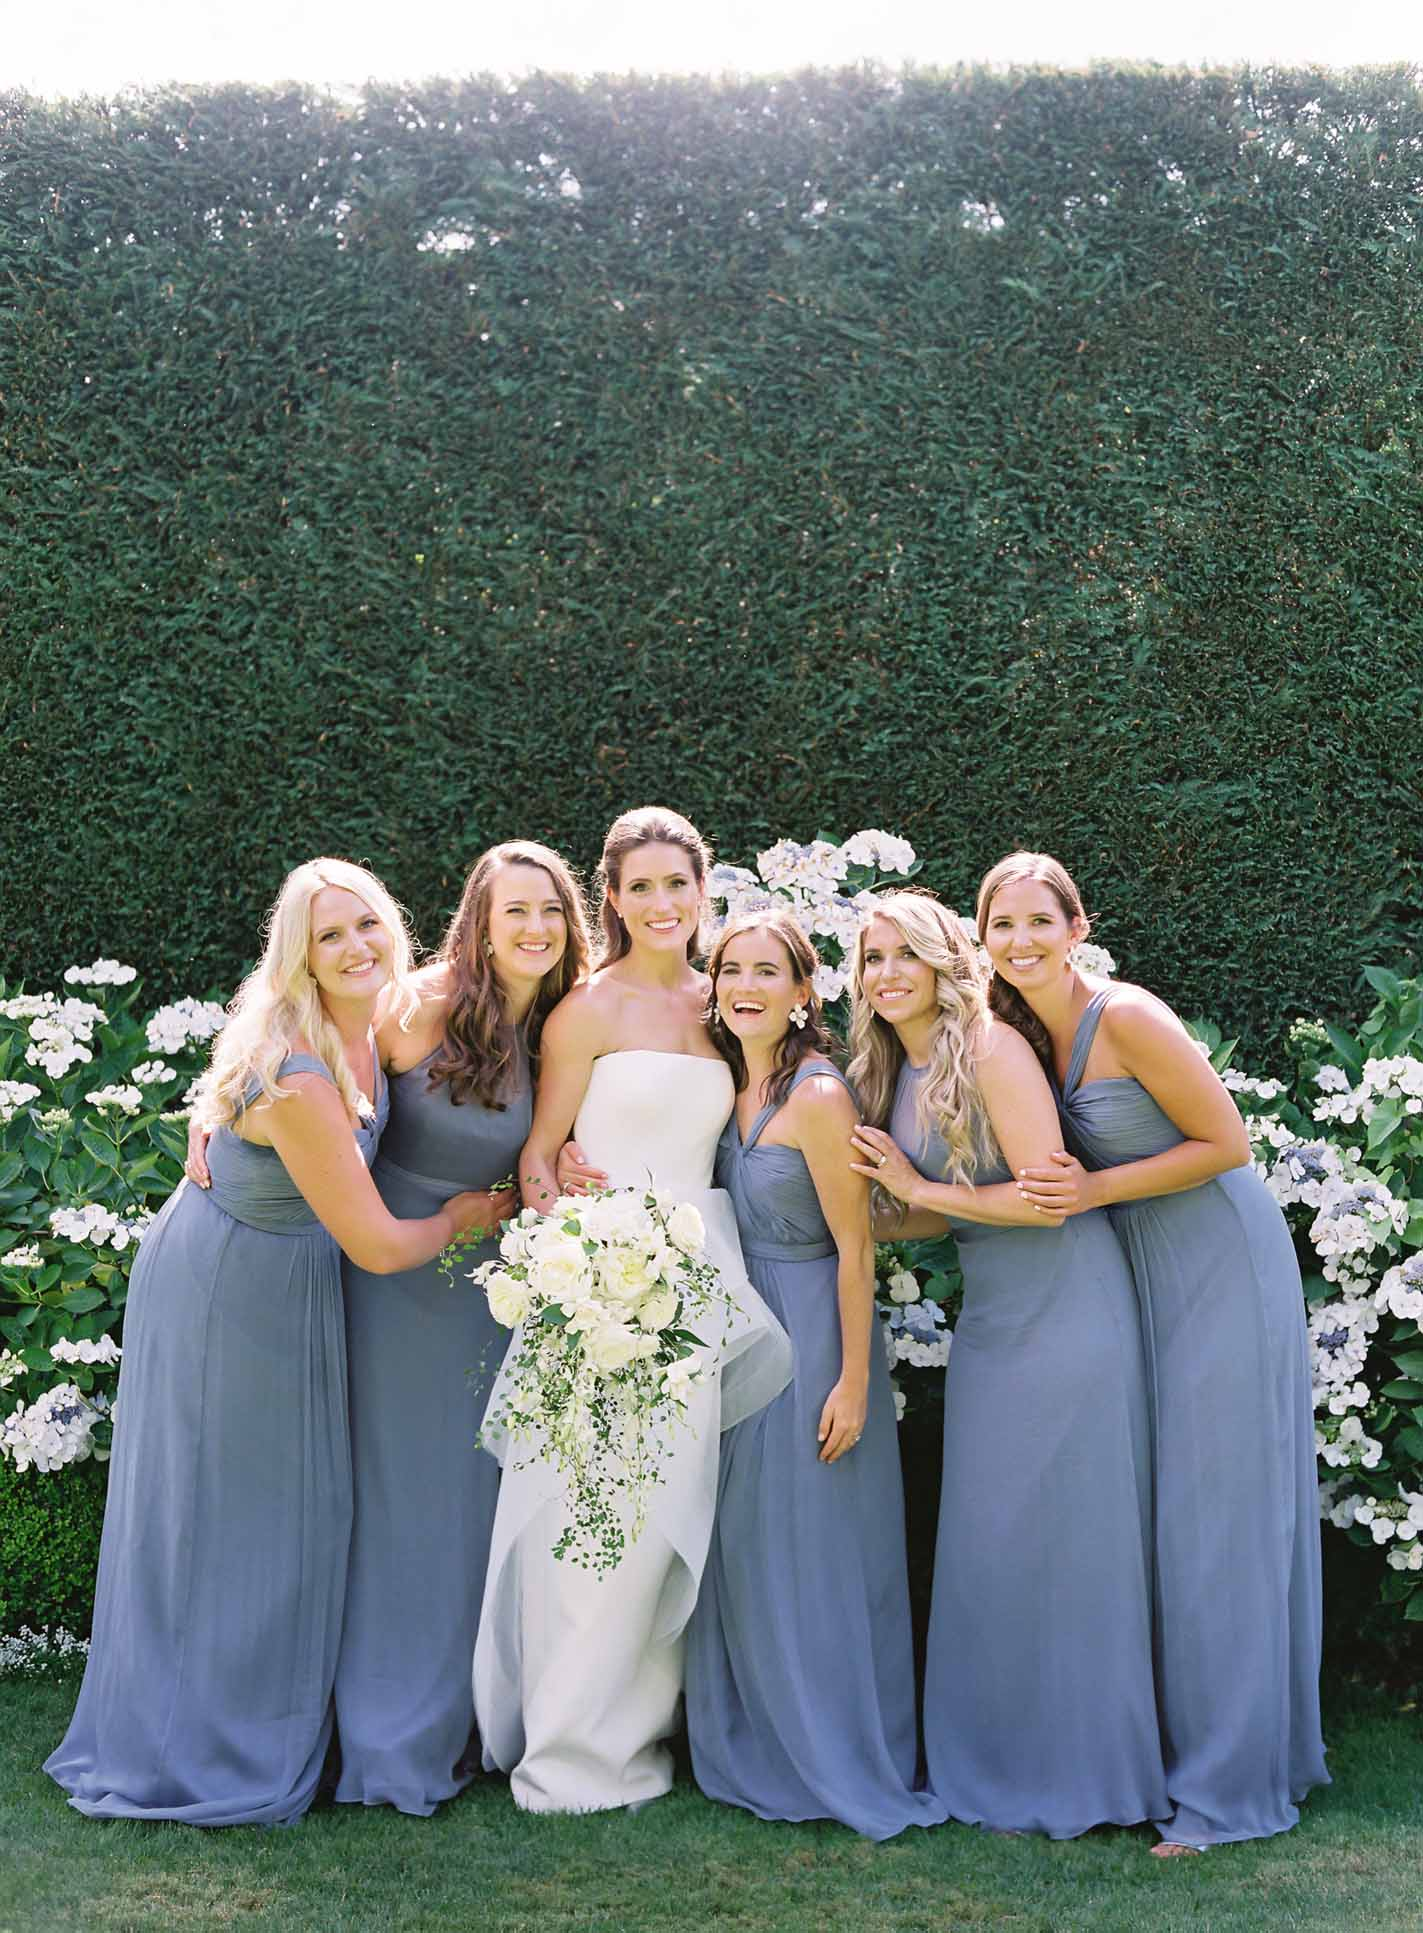 Bride with cascading bridal bouquet with bride's maids in blue dresses